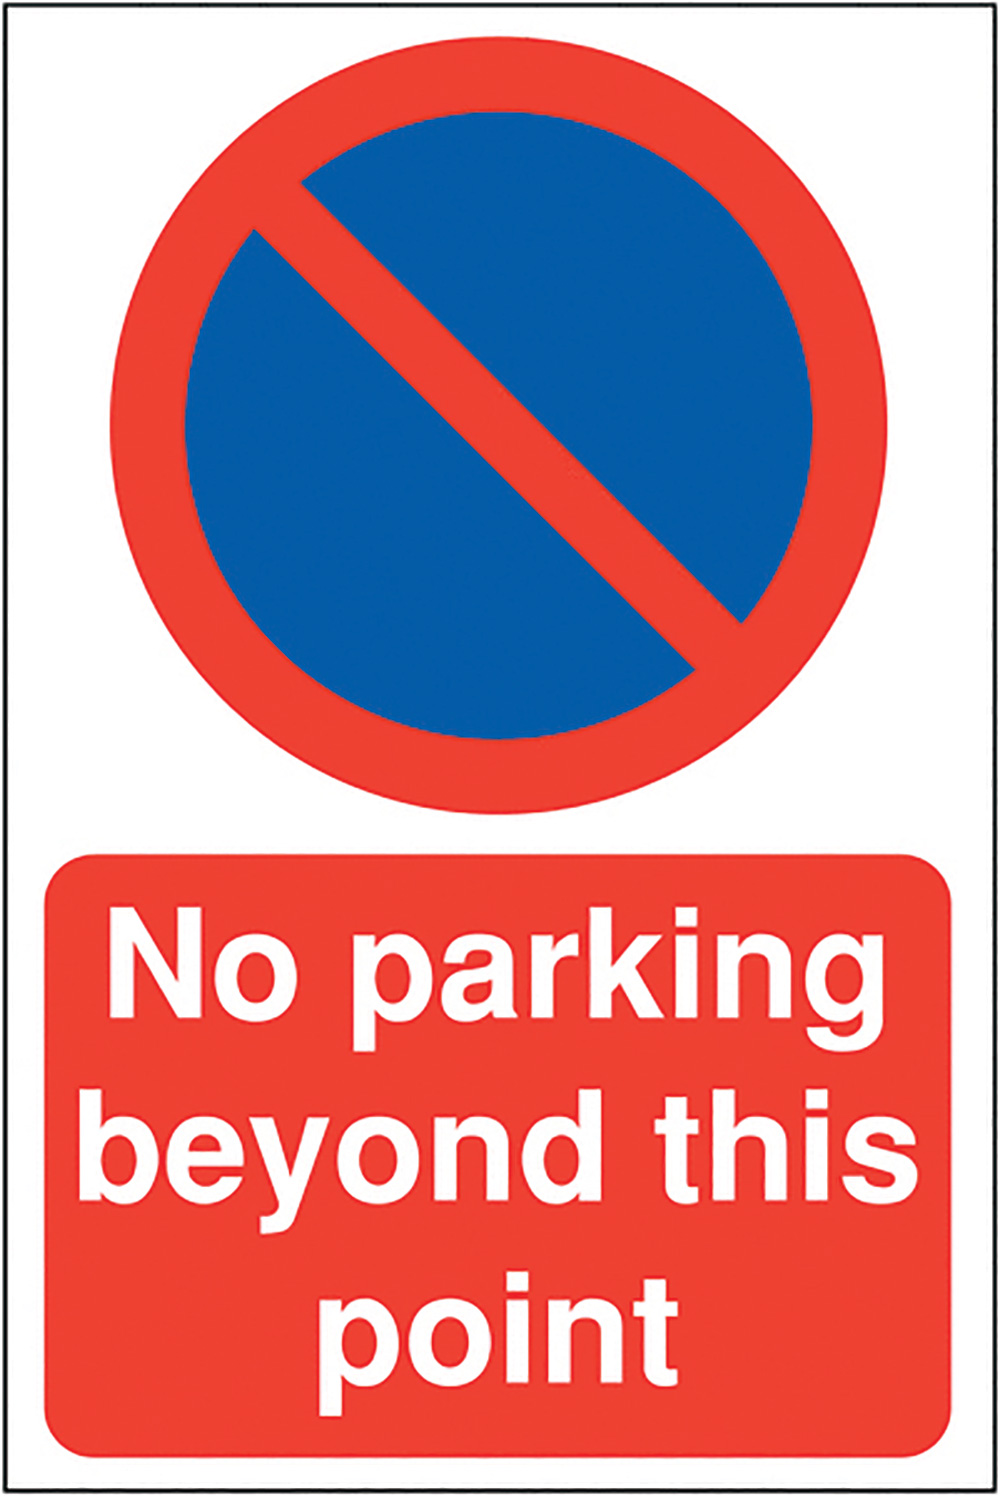 No parking beyond this point 400x300mm 2mm Polycarbonate Safety Sign